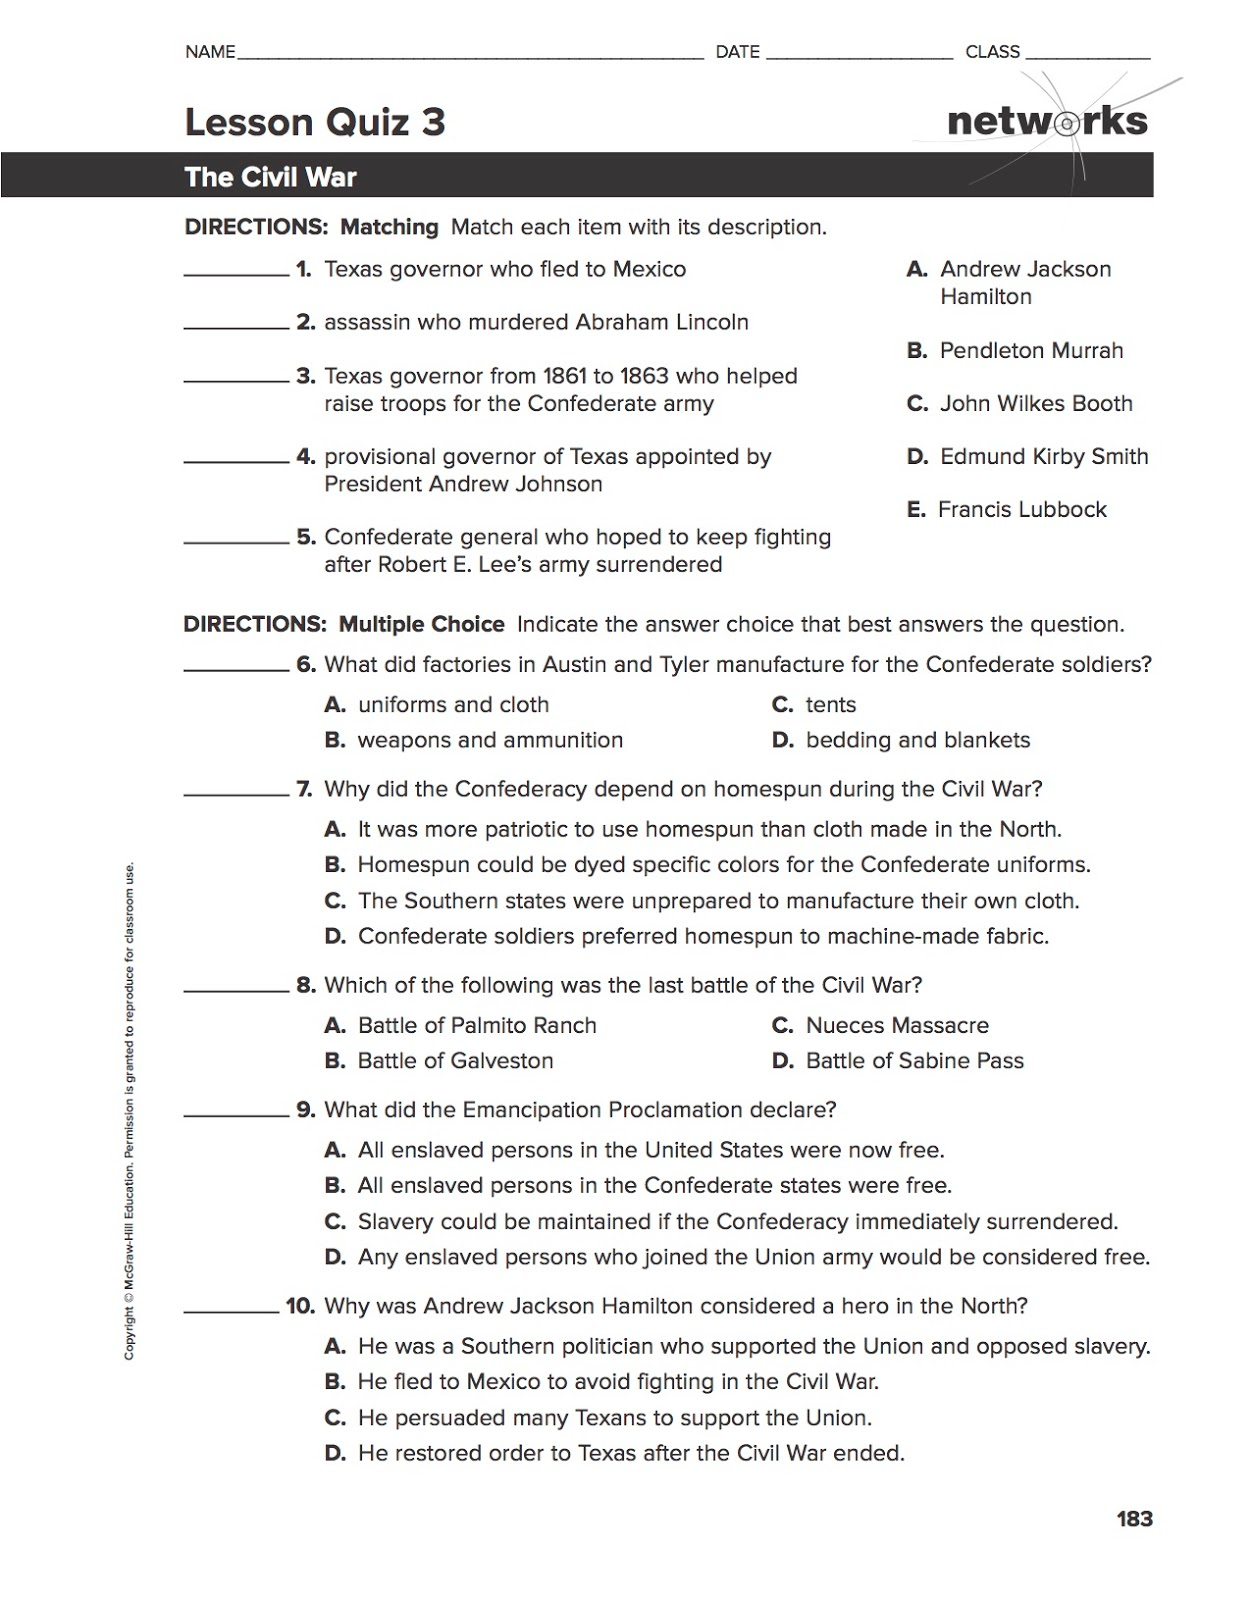 Ehms Texas History Chapter 16 Lesson 2 Quiz Worksheet Turned In Today Lesson 3 Due Tomorrow